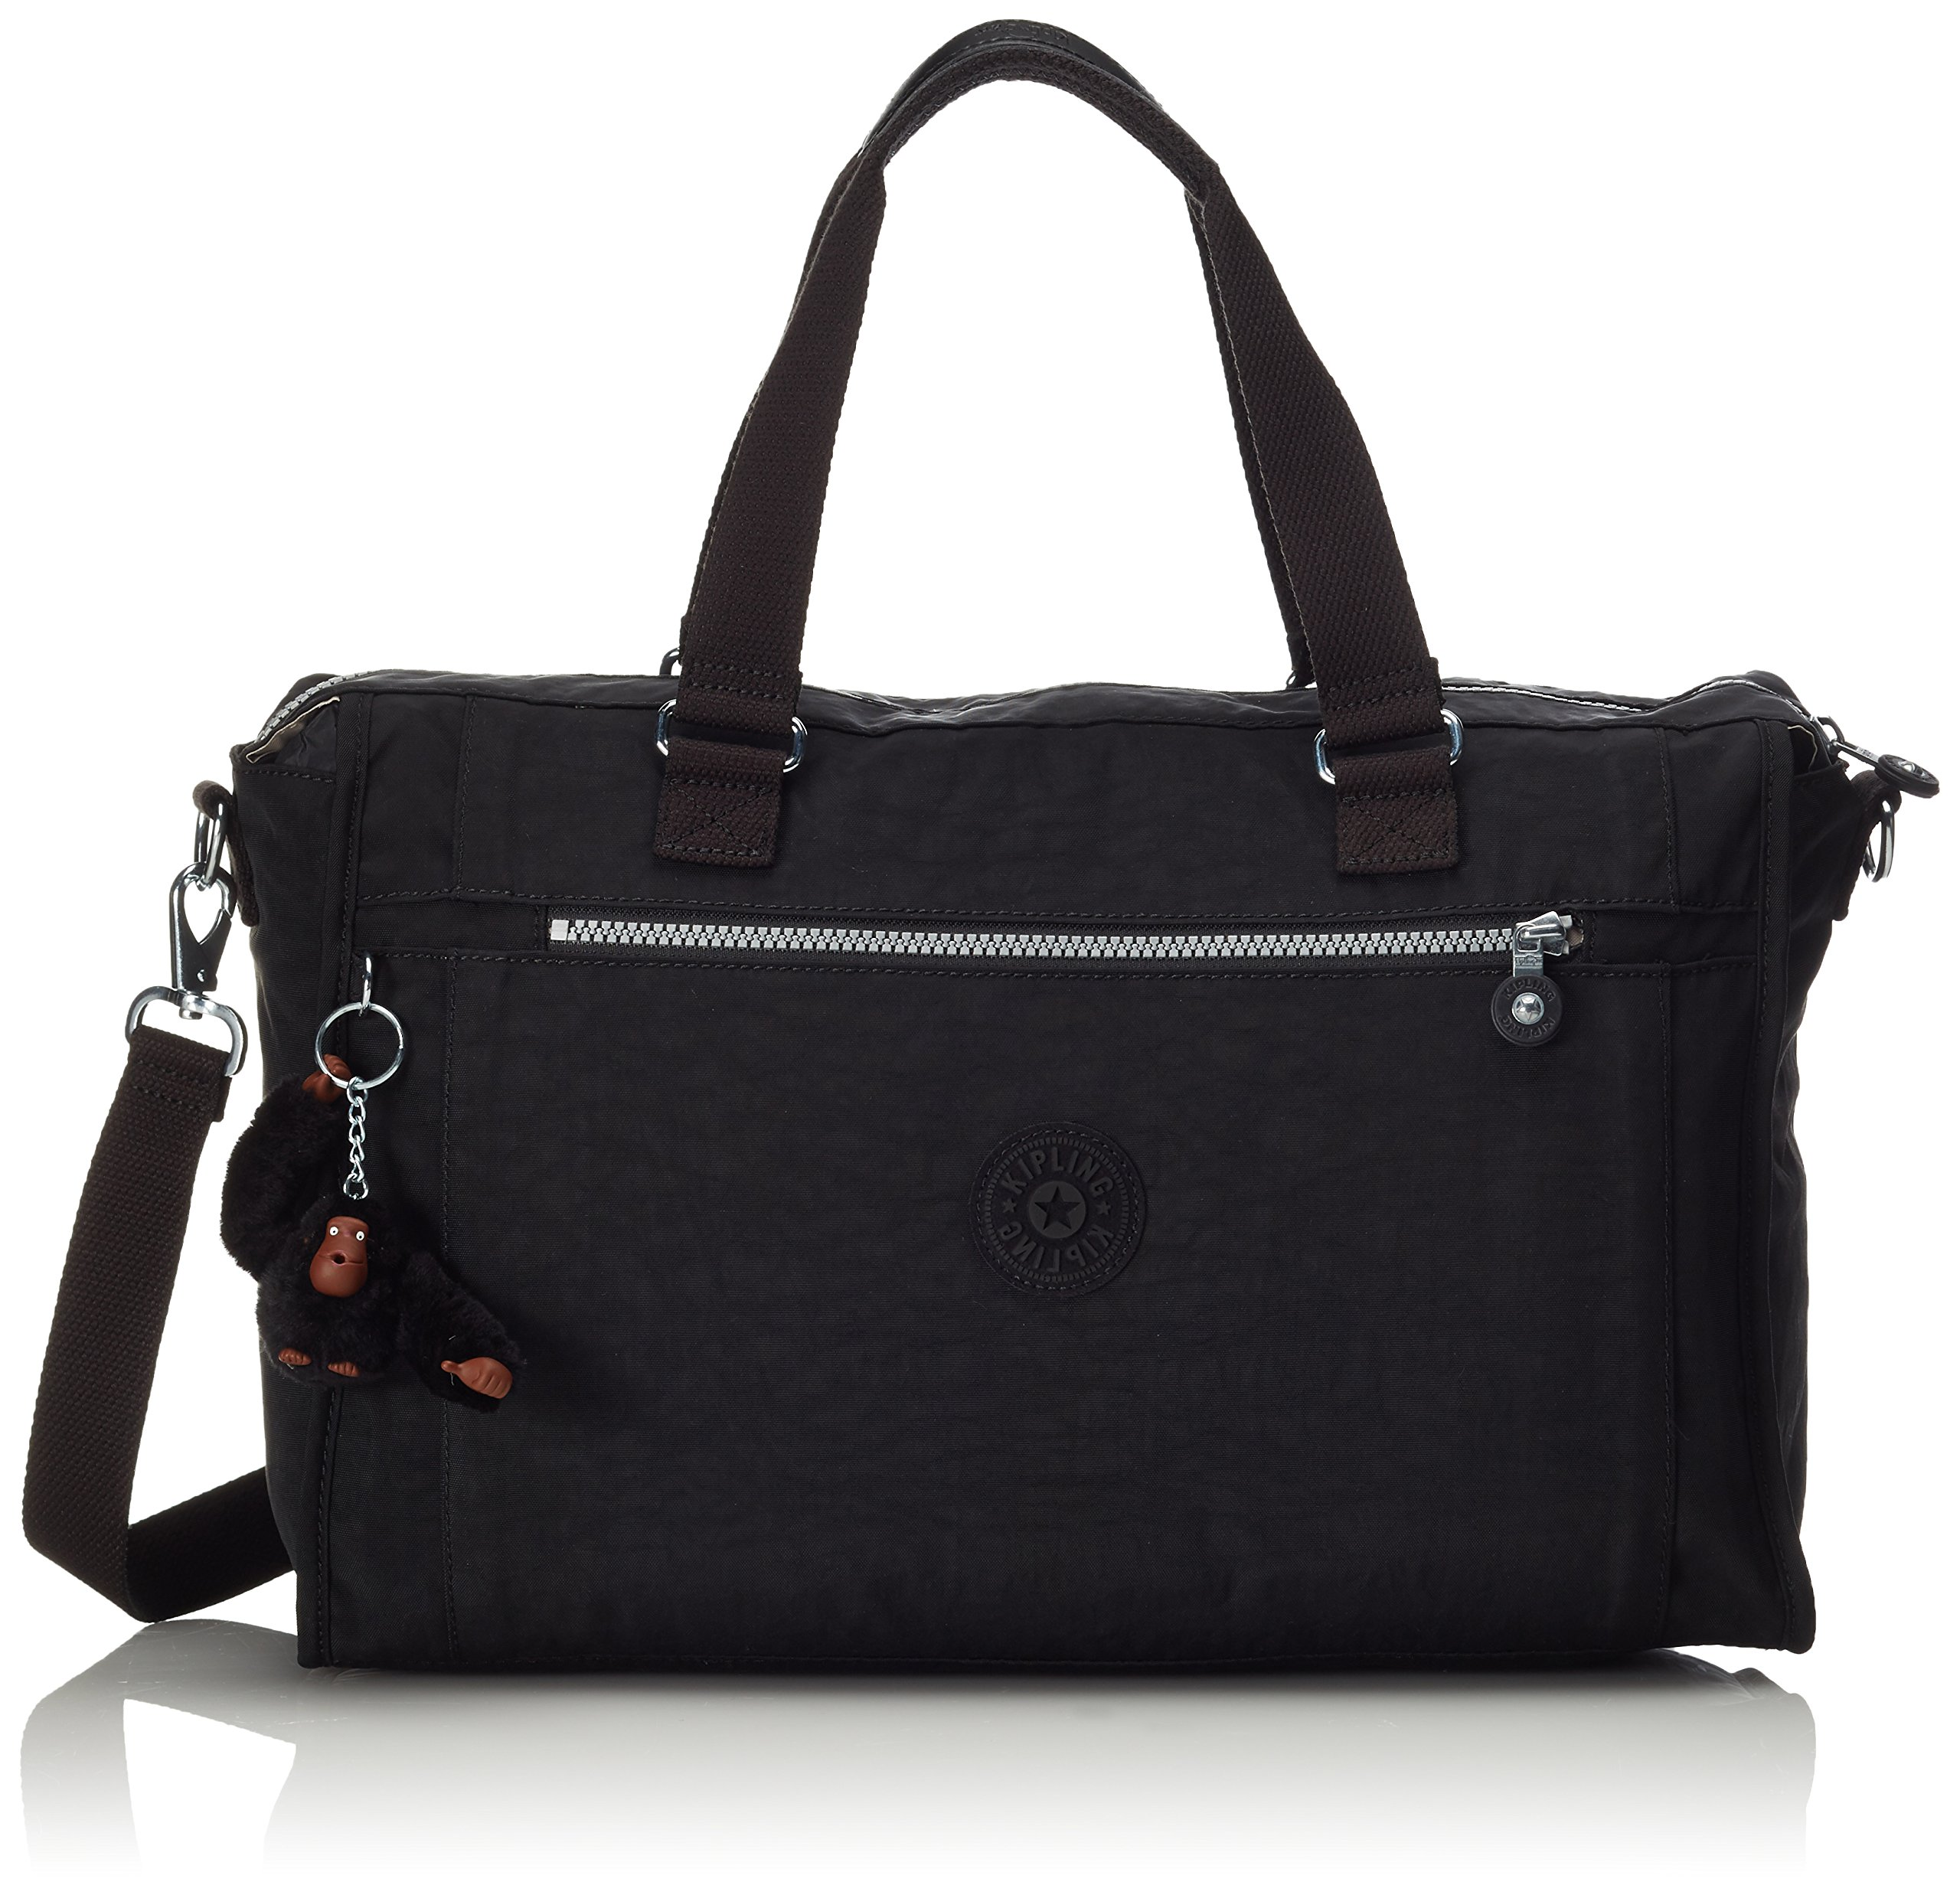 Kipling Pauline Travel Tote - 40 cm, 20 L, Black